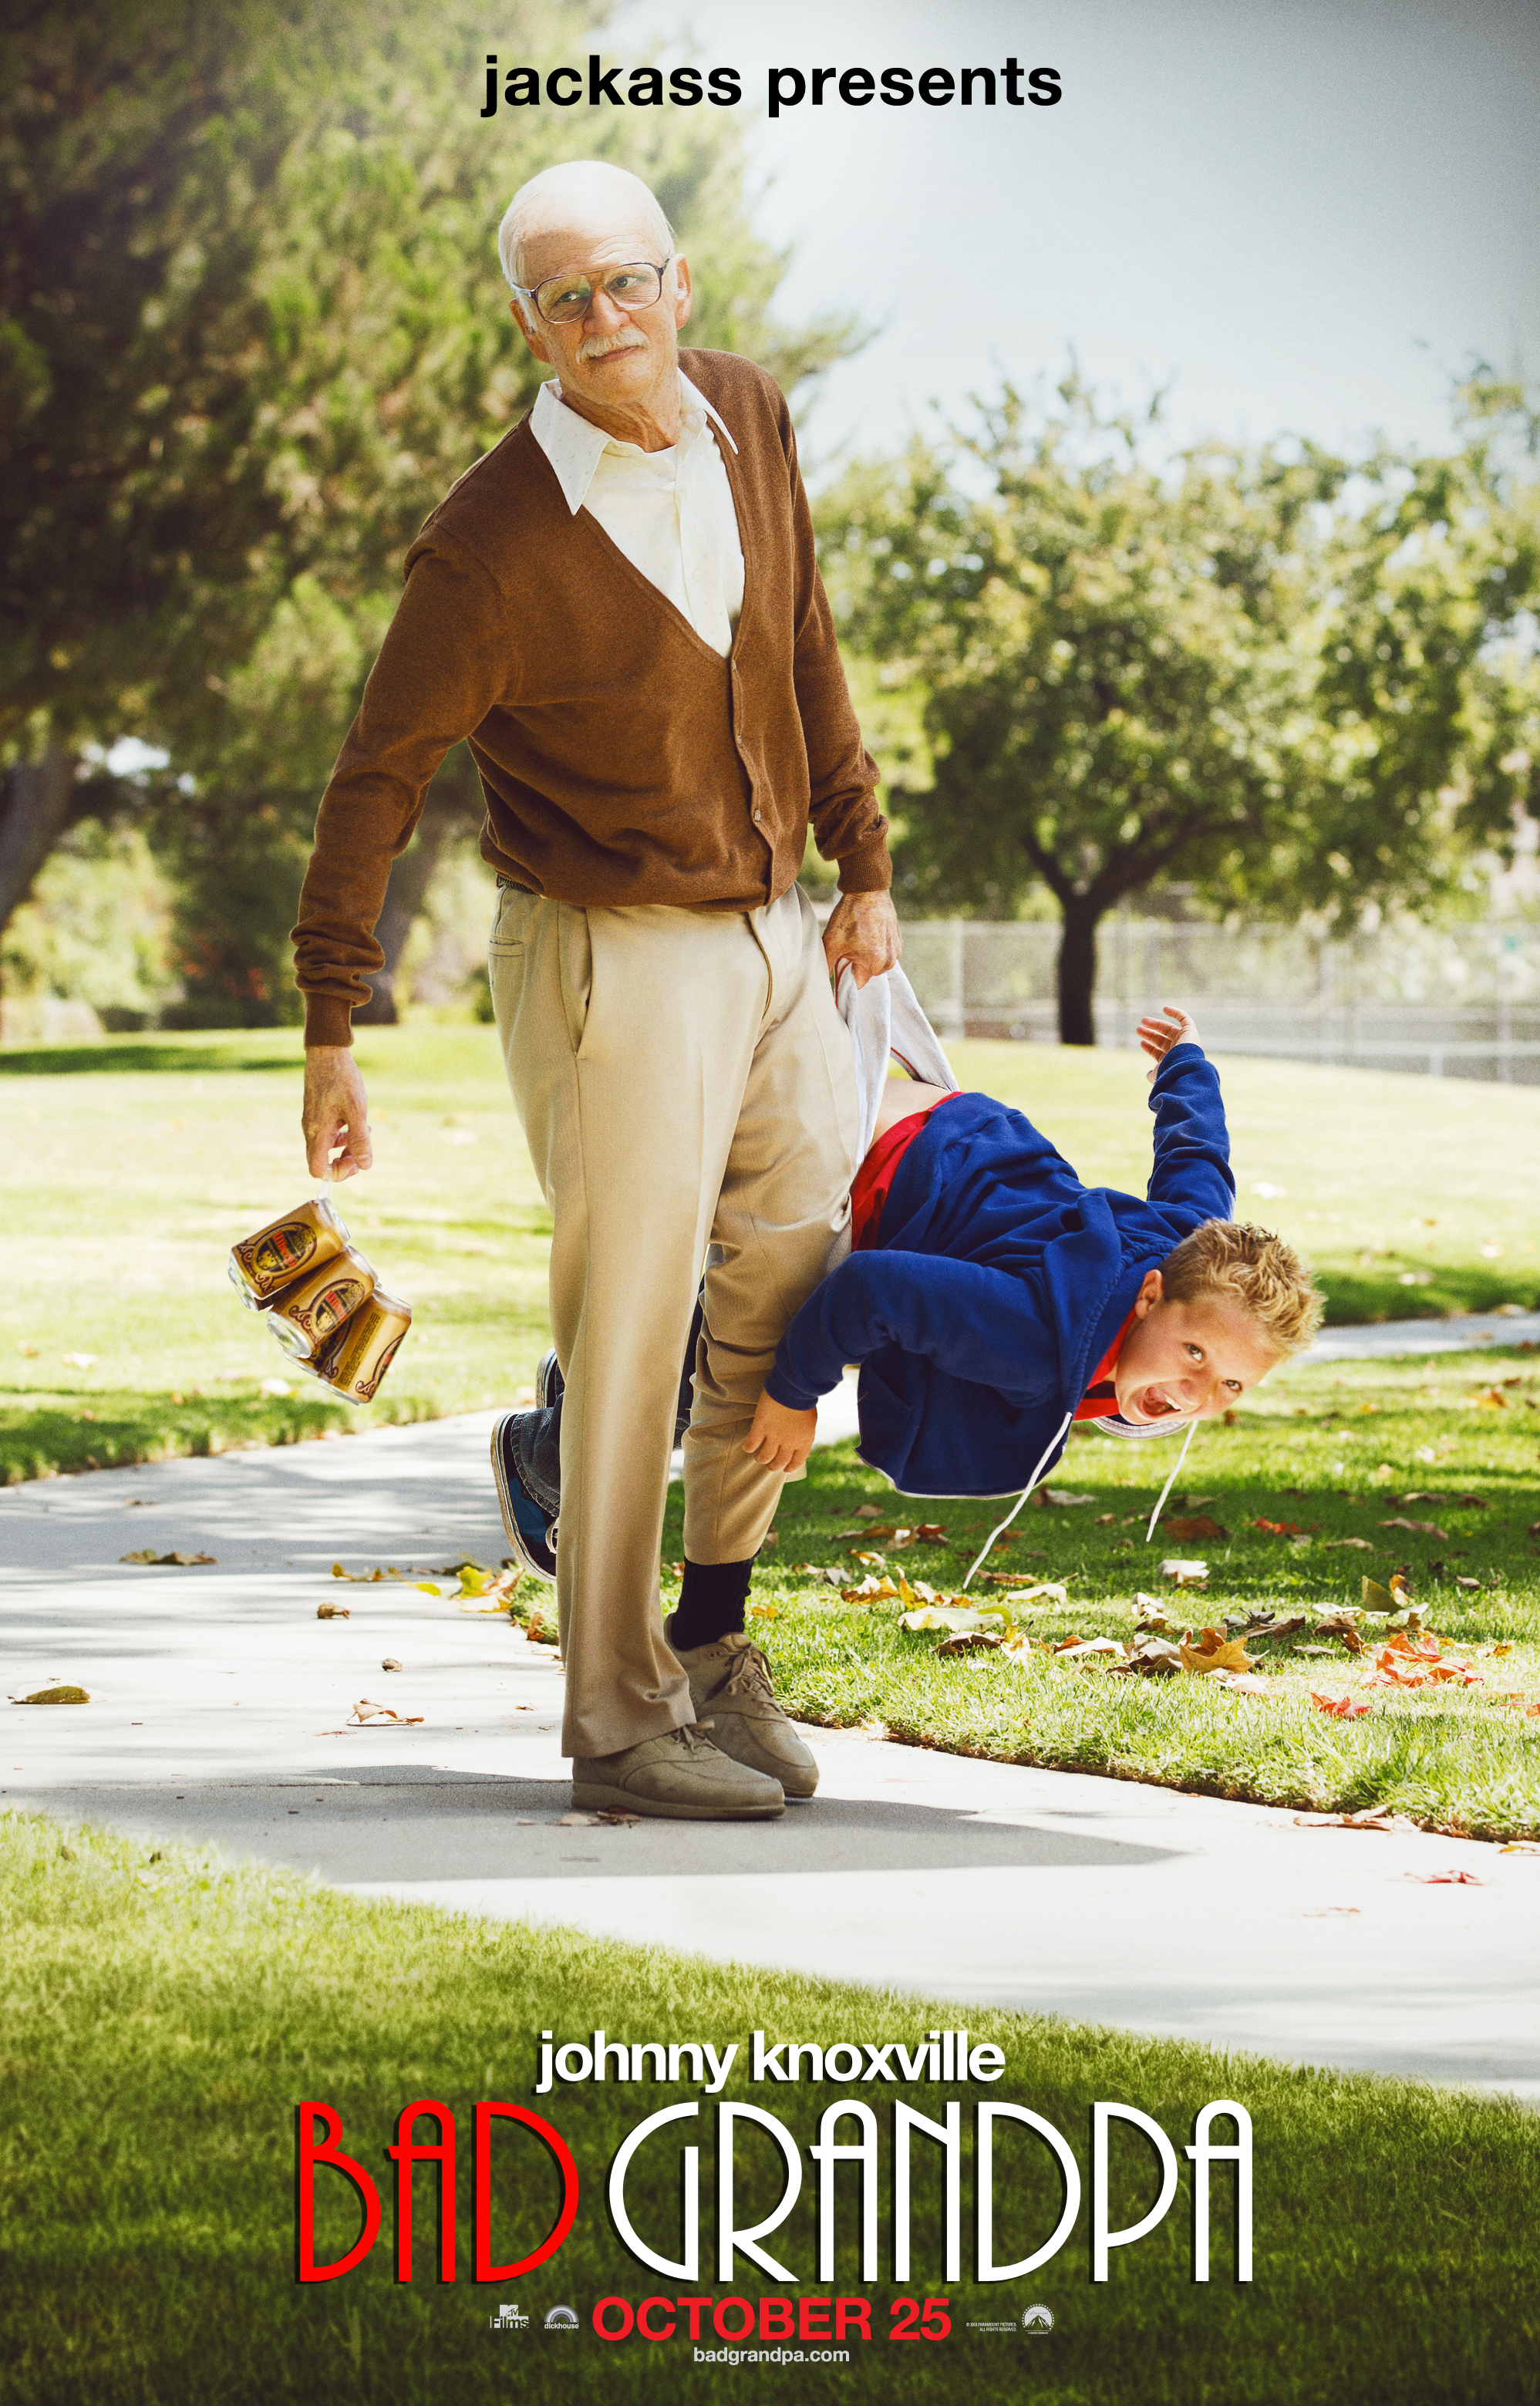 jackassbadgrampateaser New Poster for Jackass Presents: Bad Grandpa Features Johnny Knoxville as Old Man